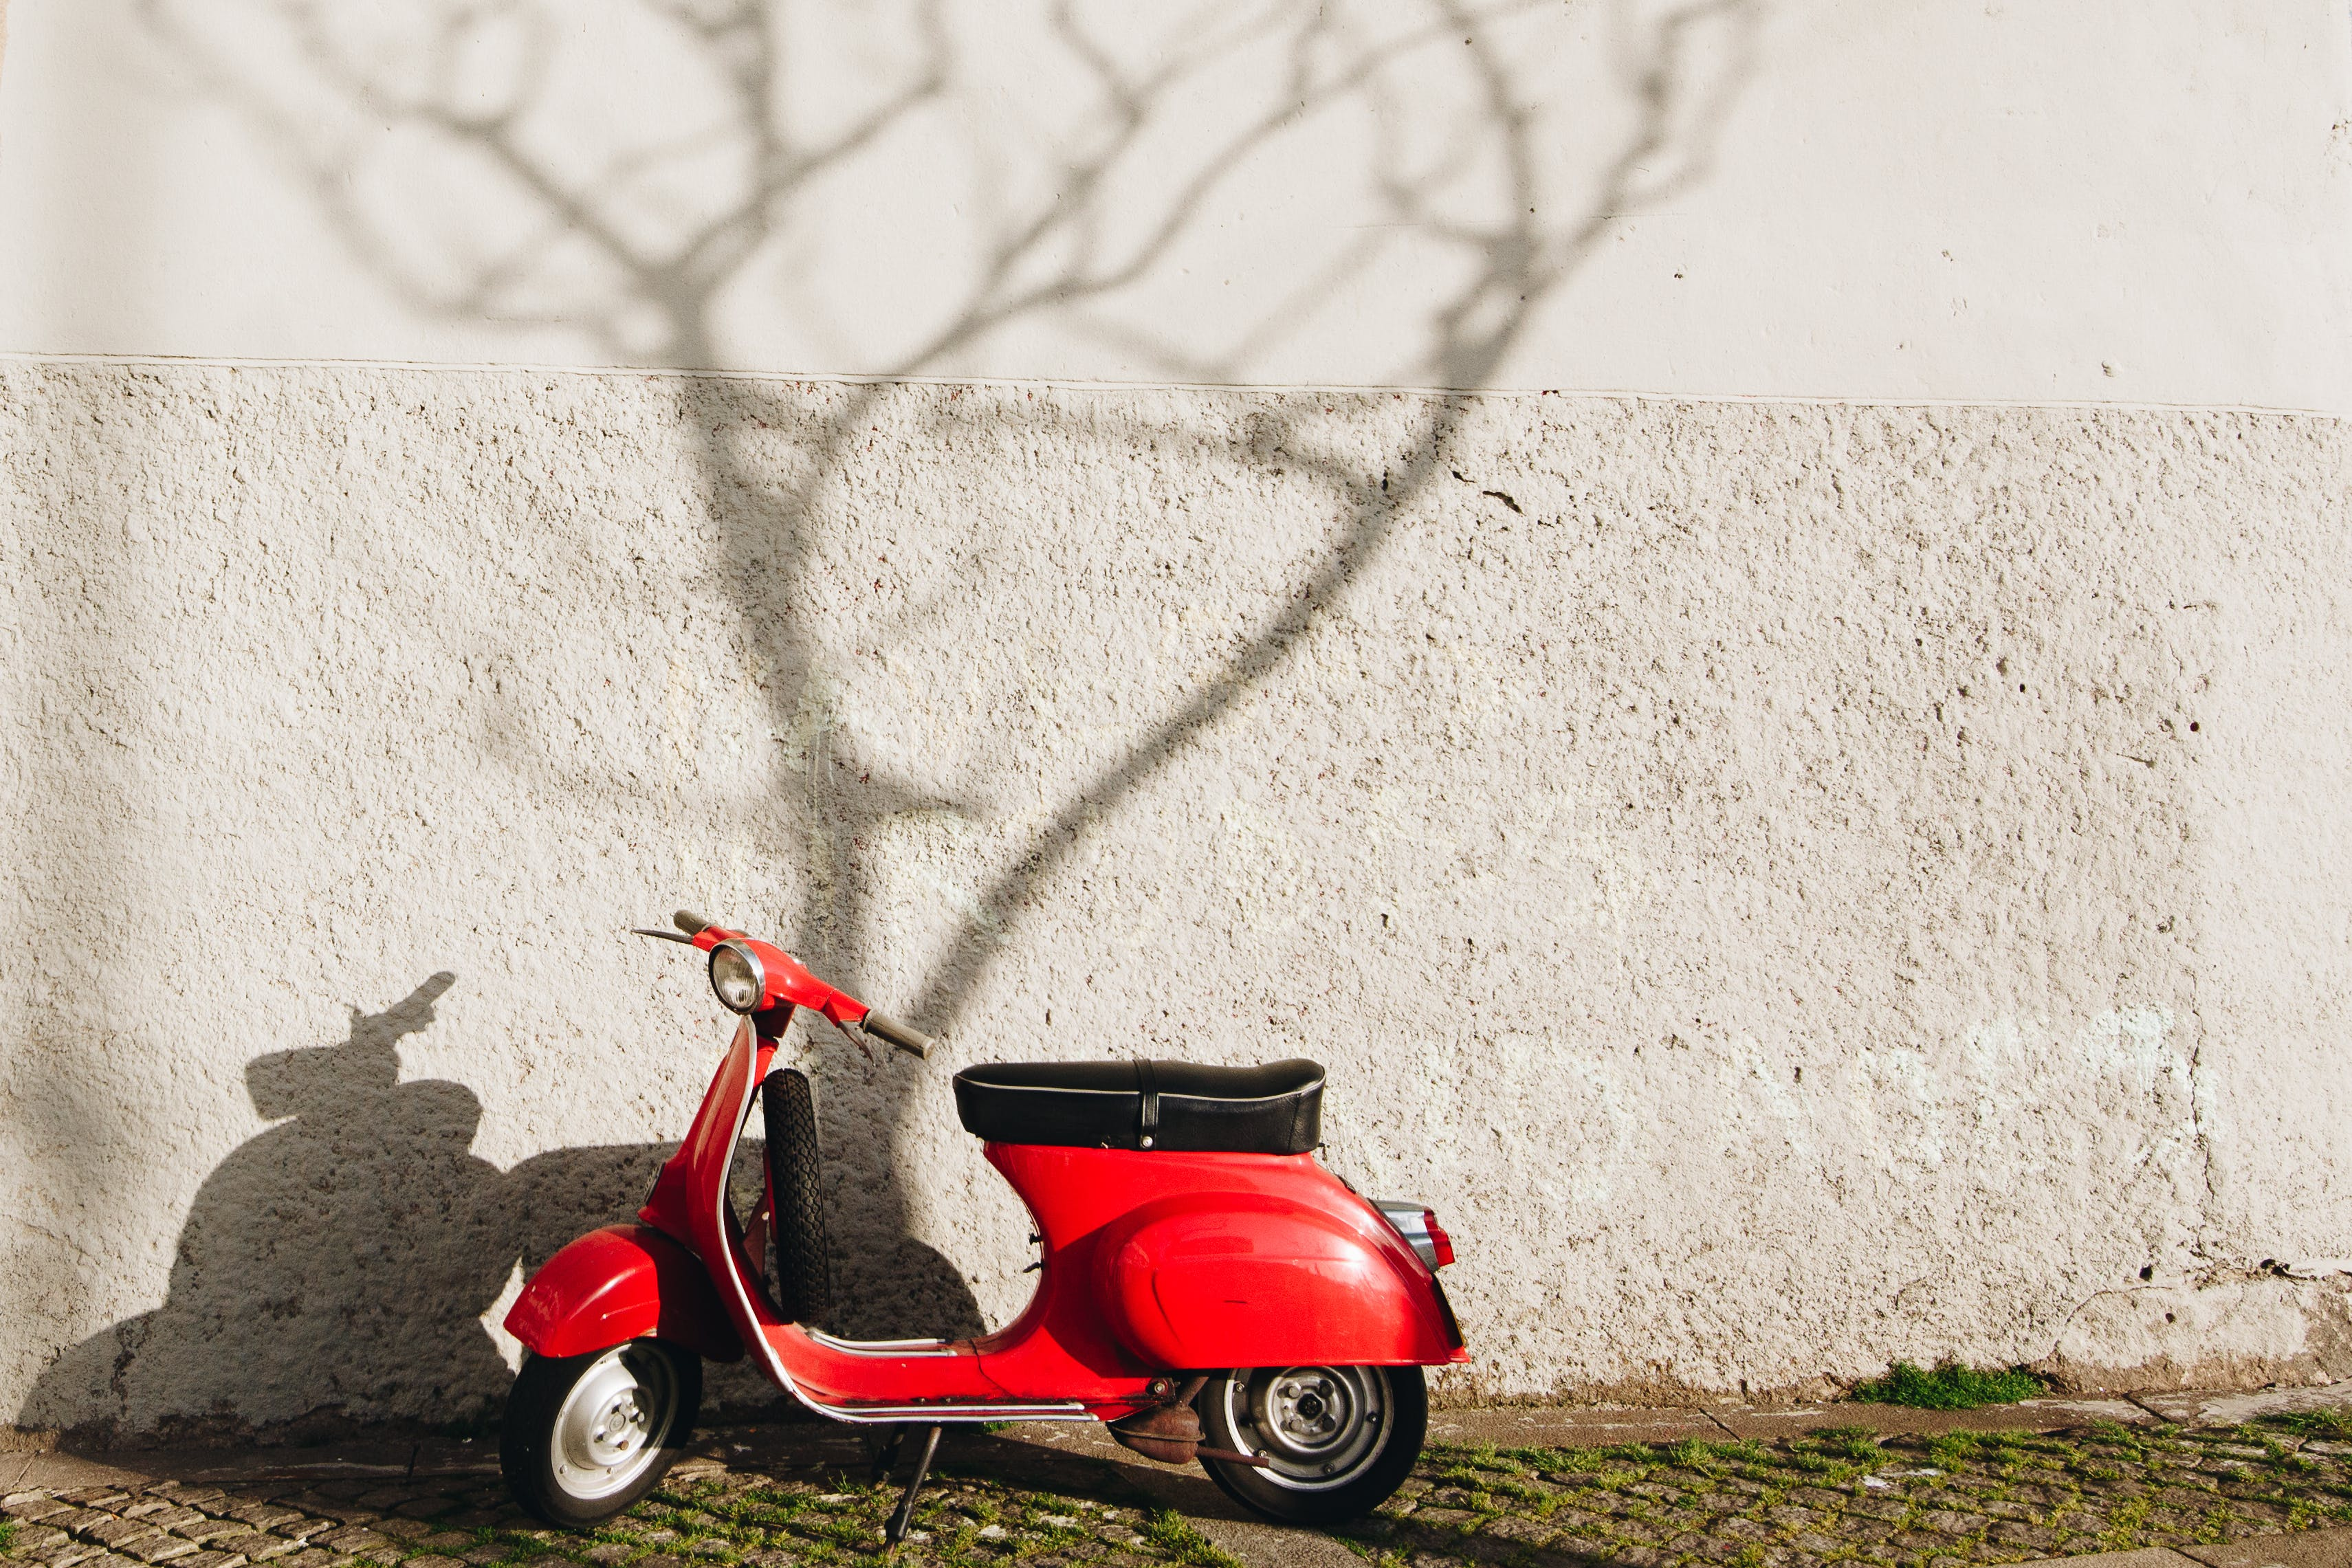 Red Motor Scooter Near Wall